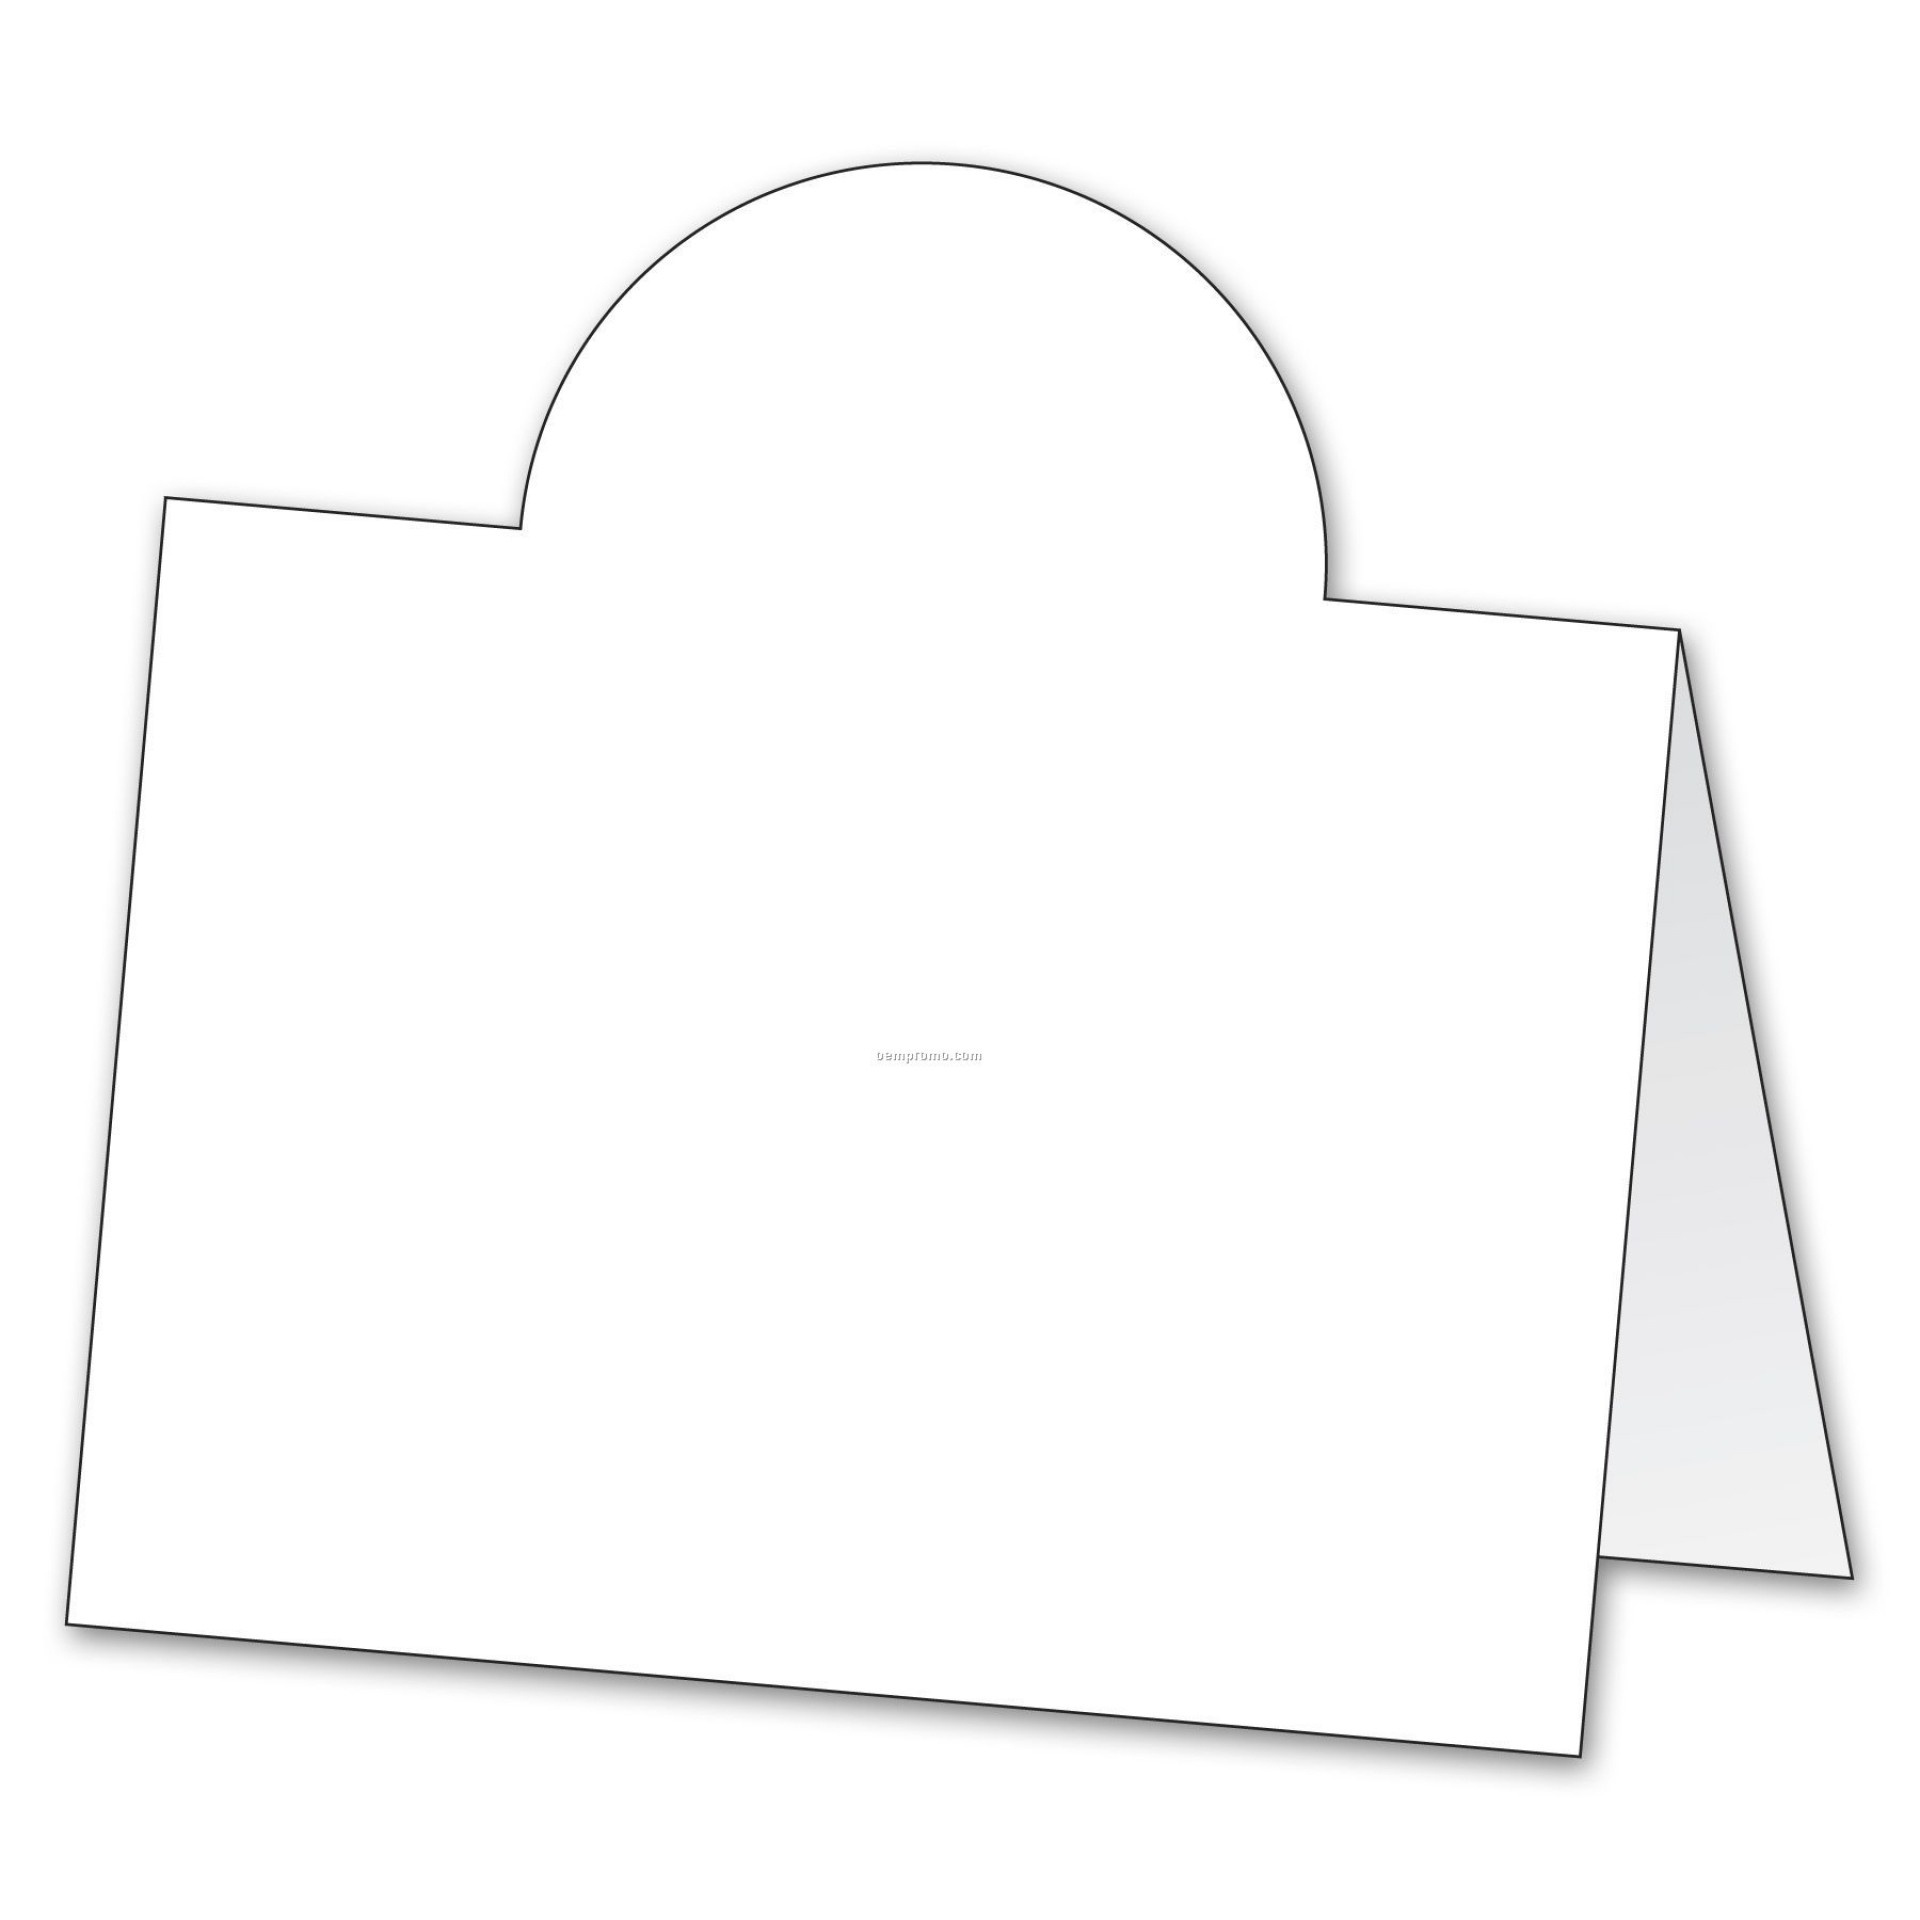 029 Template For Place Cards Table Tent Free Printable Card 2B9Ctlpb - Free Printable Table Tents